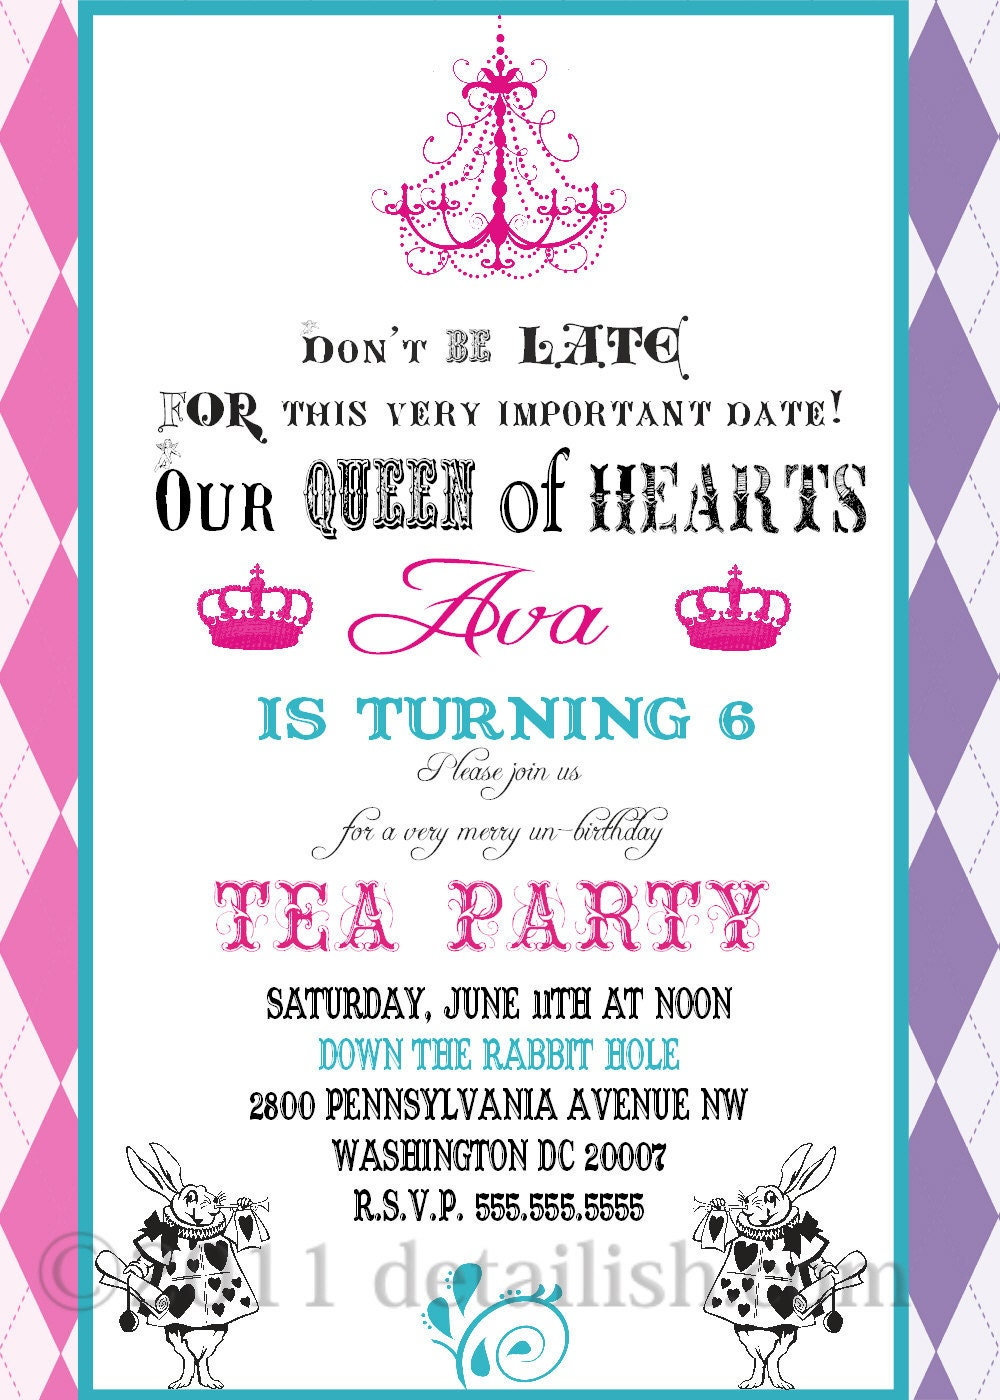 birthday party invitation email wording ballerina birthday party alice in wonderland fancy tea party by lillymilliestudio on